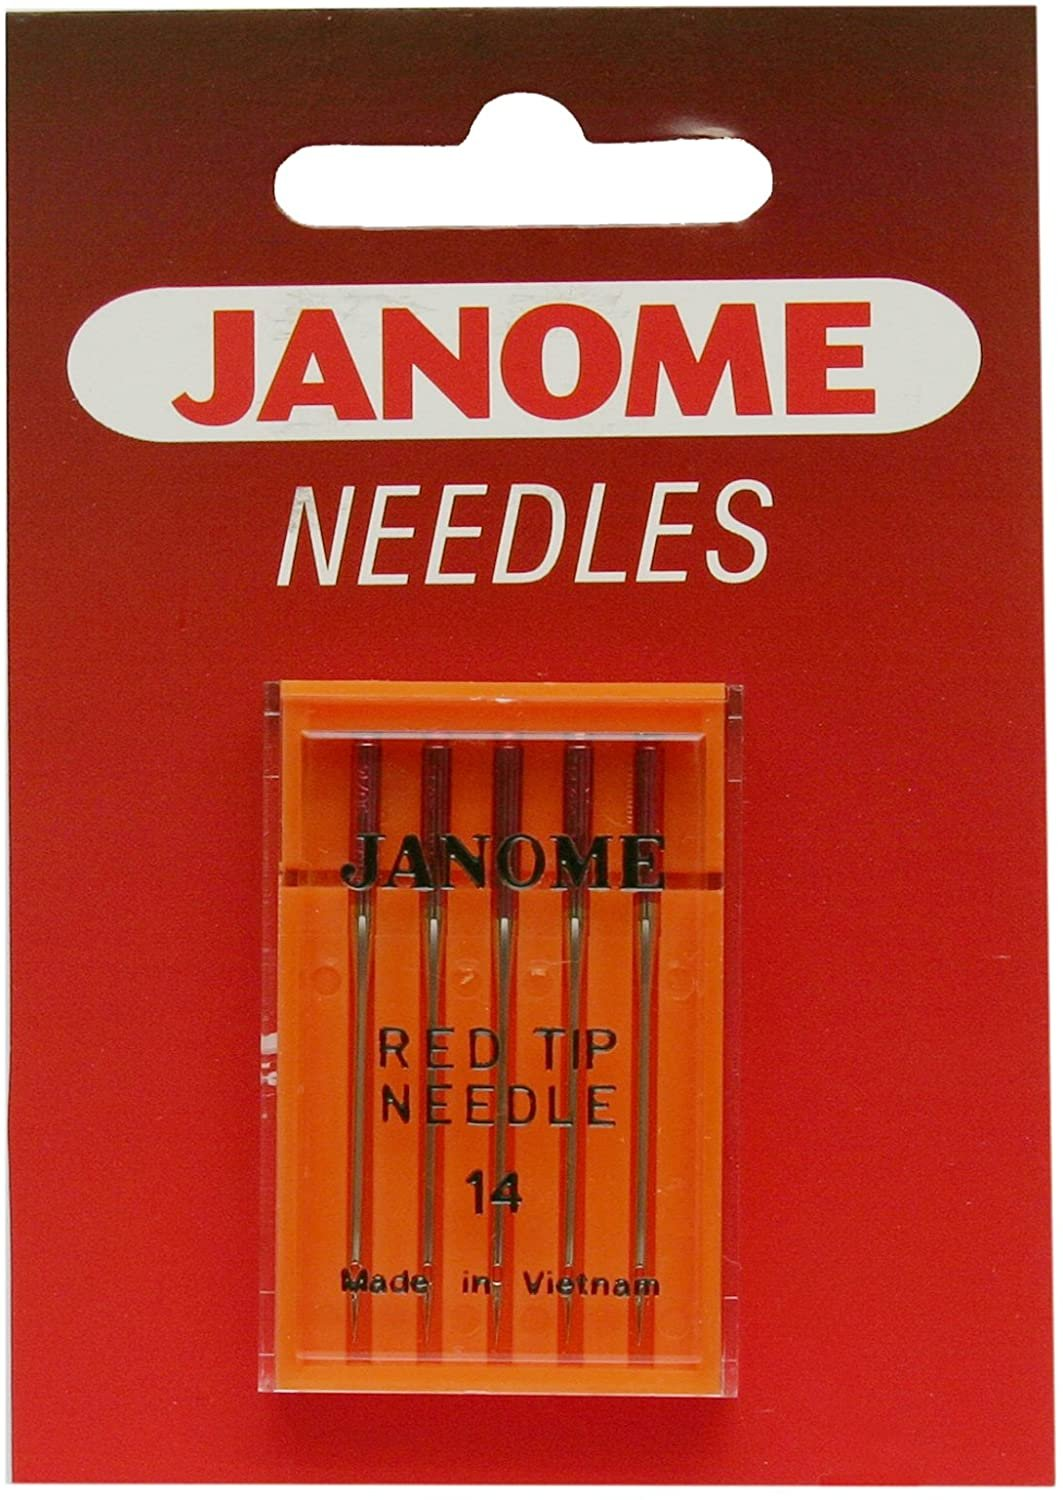 Janome Red Tip Needles #14 990314000